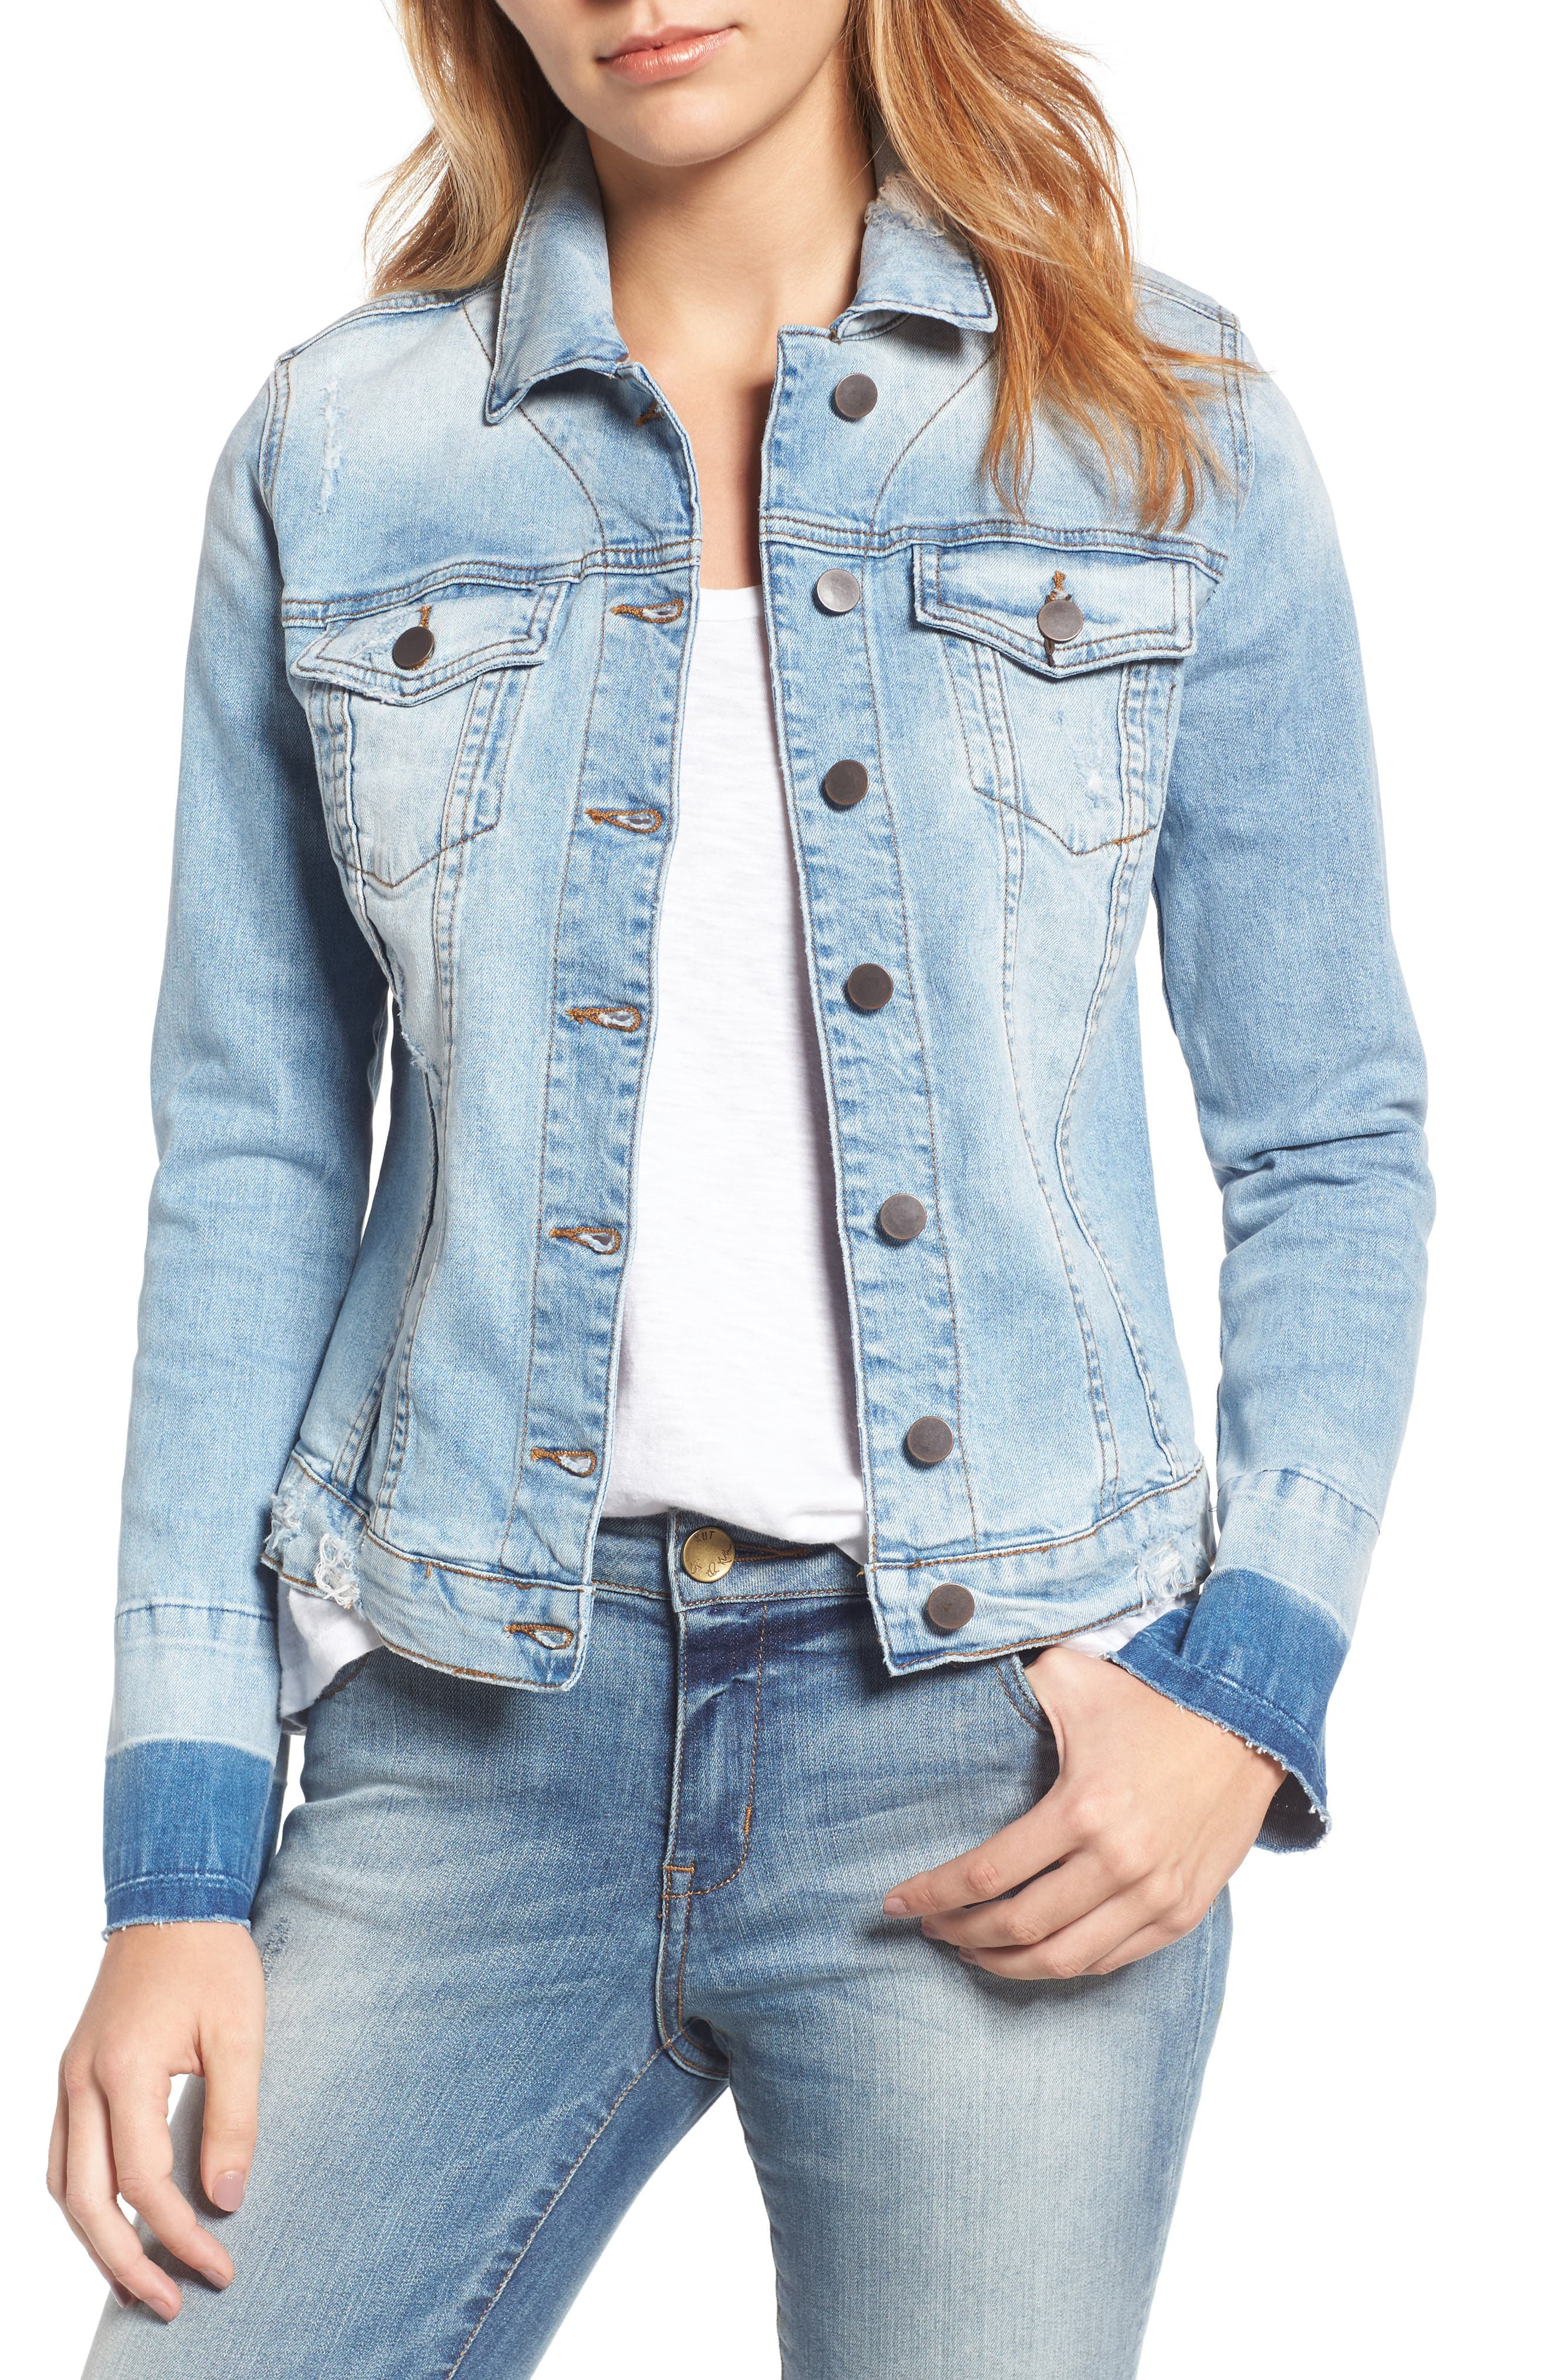 KUT from the Kloth Release Cuff Denim Jacket